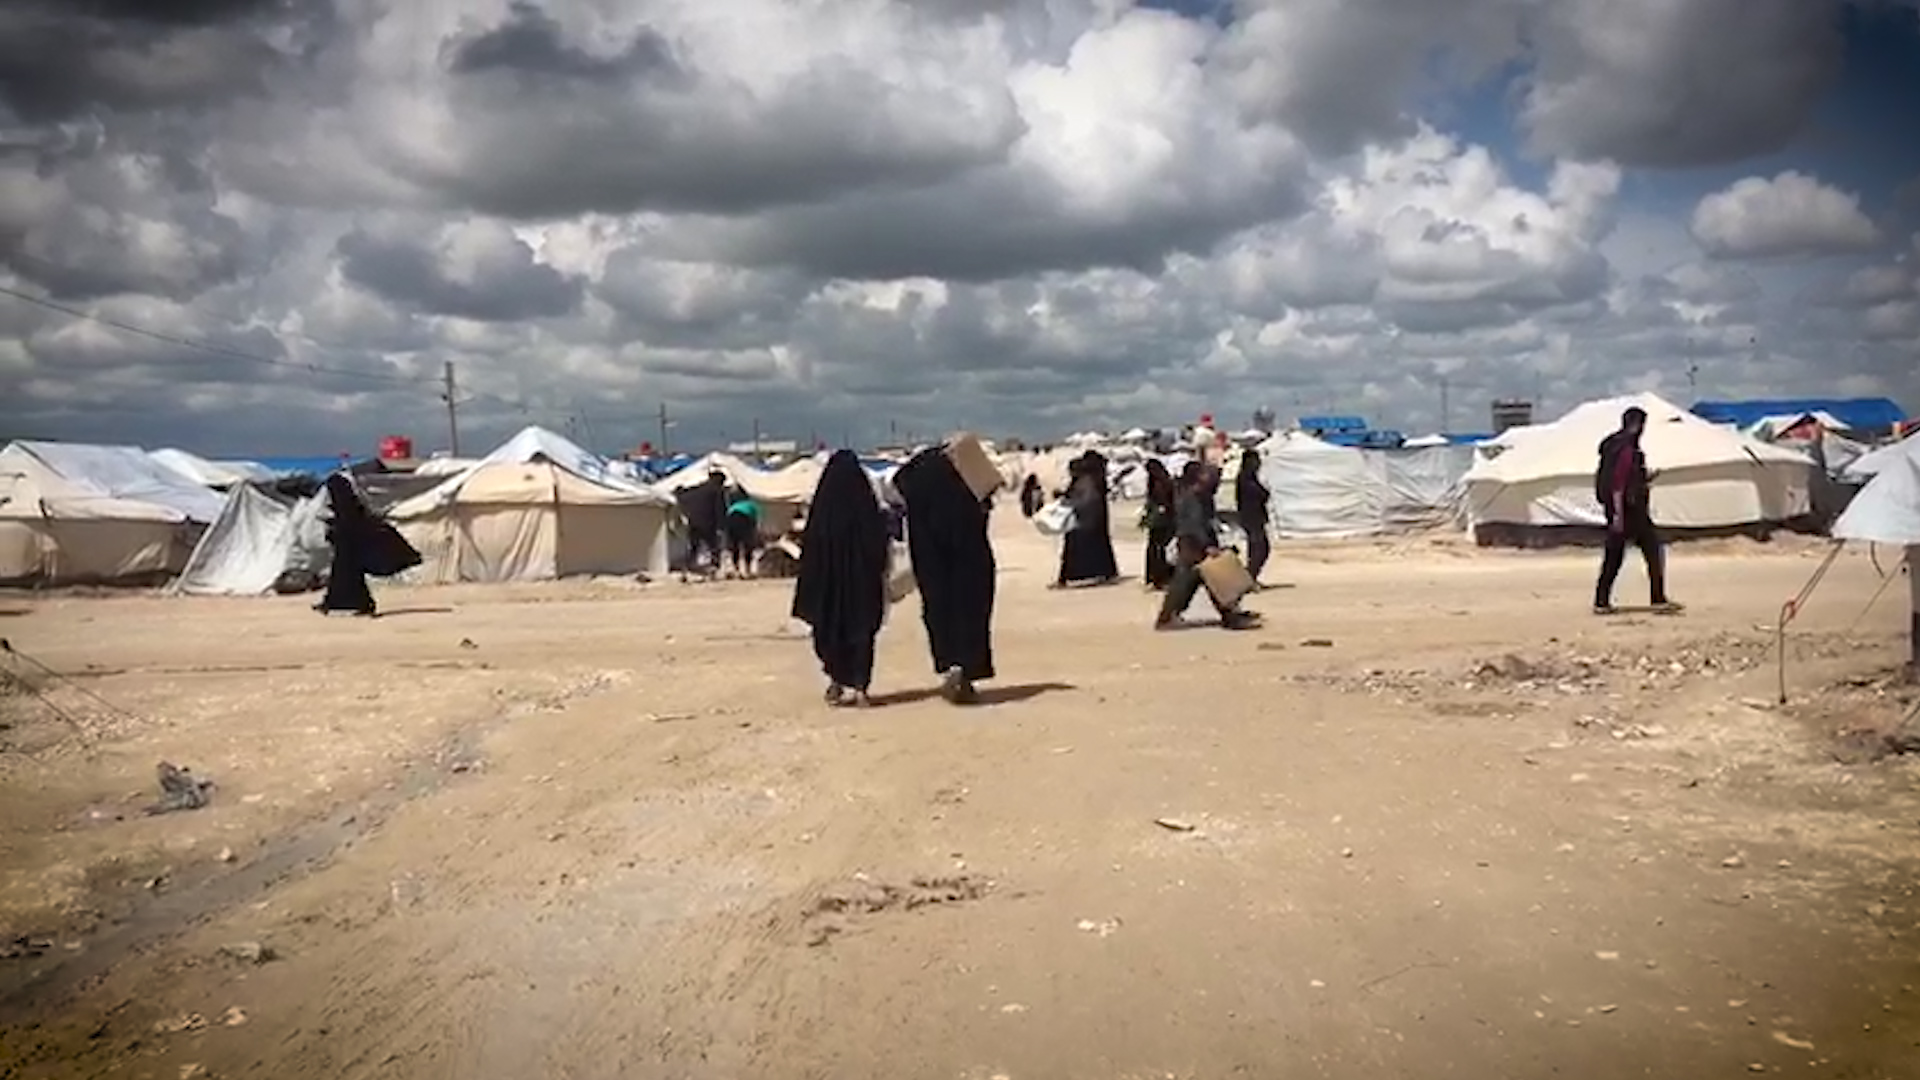 True ISIS believers regroup inside refugee camp, terrorize the 'impious'